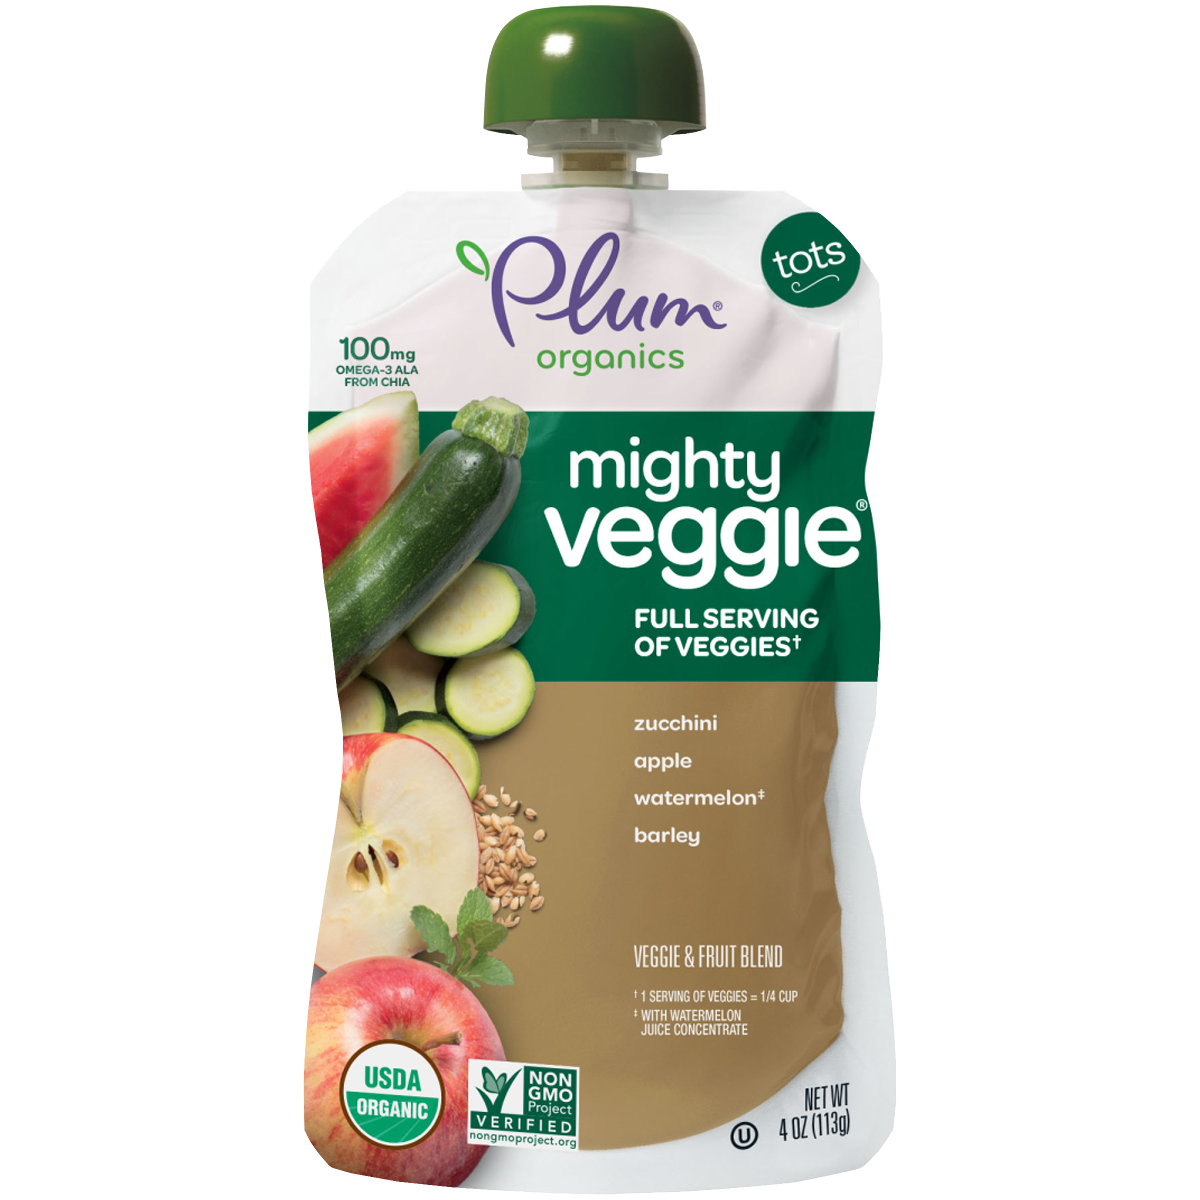 Plum Organics Mighty Veggie® Zucchini, Apple, Watermelon & Barley